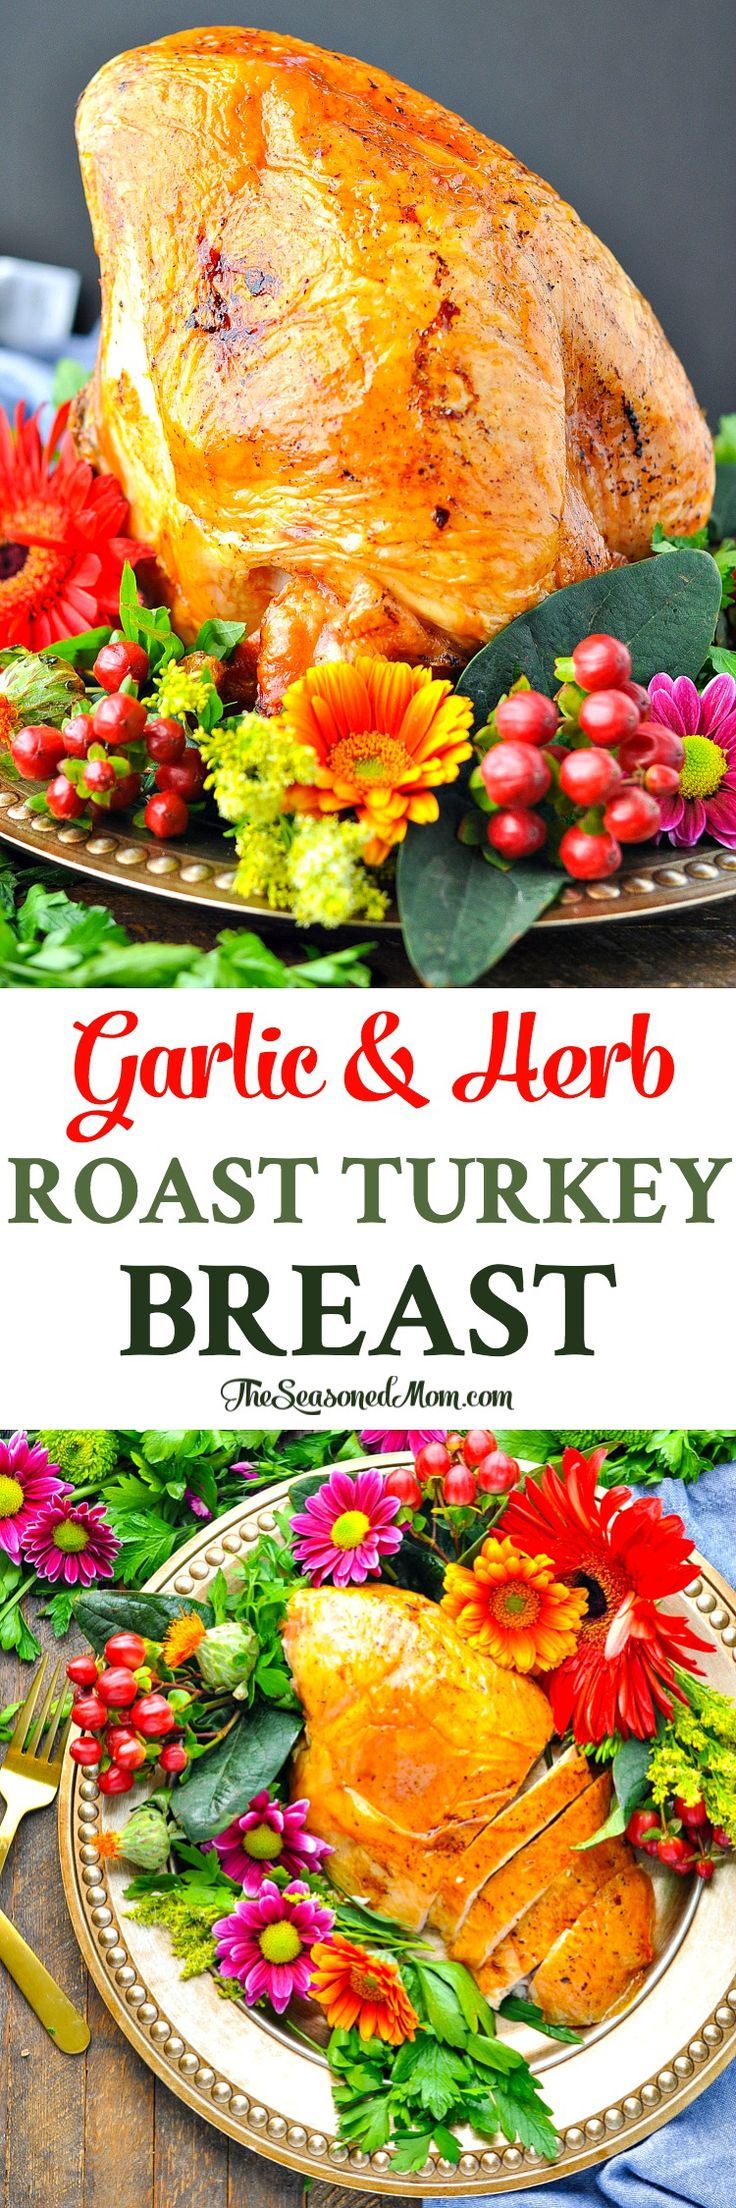 This Garlic and Herb Roast Turkey Breast is crispy on the outside and tender, juicy, and flavorful on the inside -- perfect for Thanksgiving dinner! Thanksgiving Party | Turkey Recipes | Turkey Breast Recipes #turkey #dinner #thanksgiving